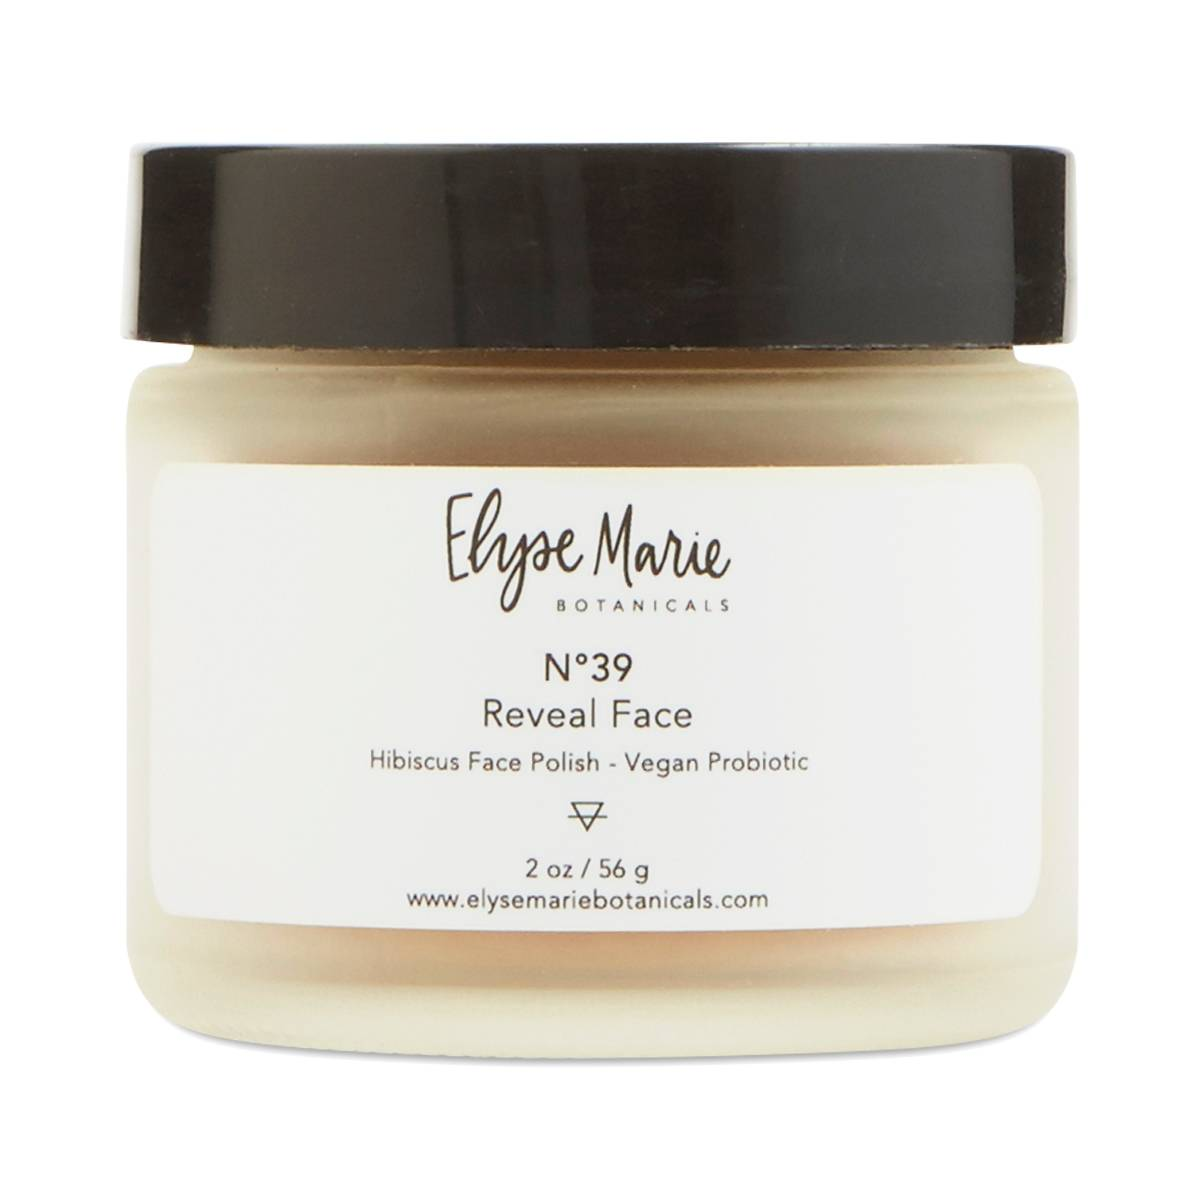 Reveal Face Hibiscus Face Polish By Elyse Marie Botanicals